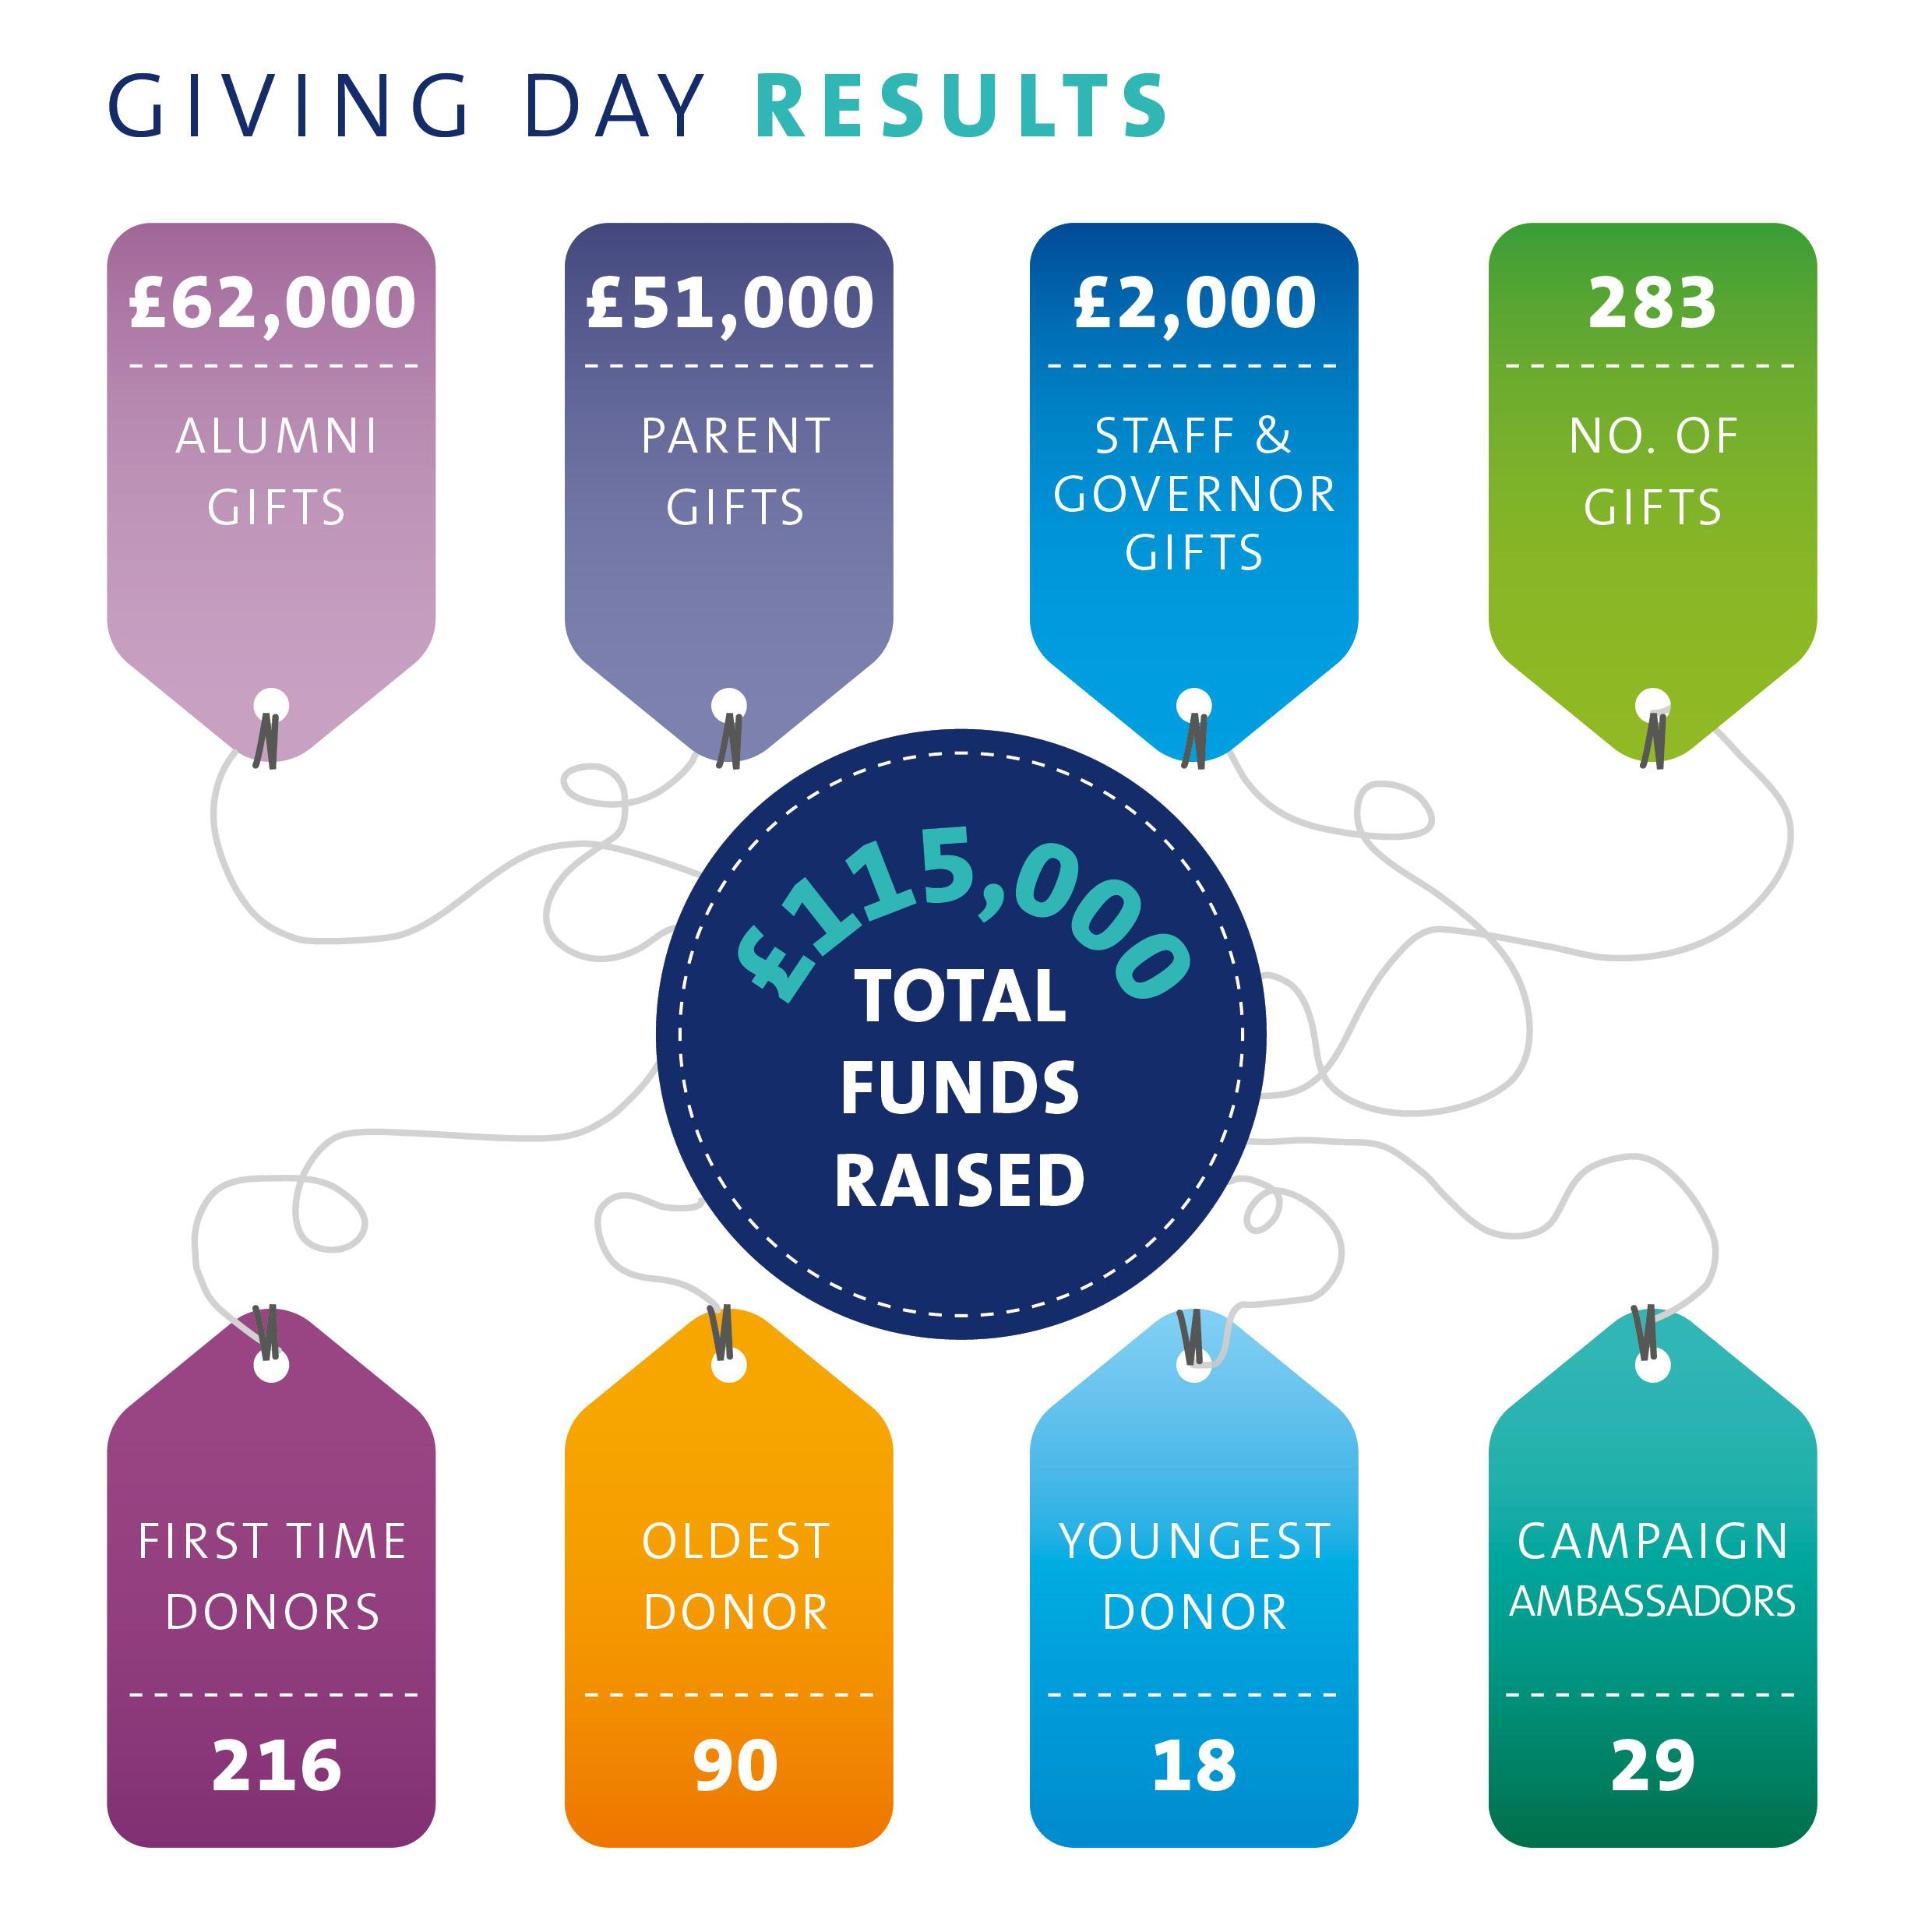 Giving Day Results Image